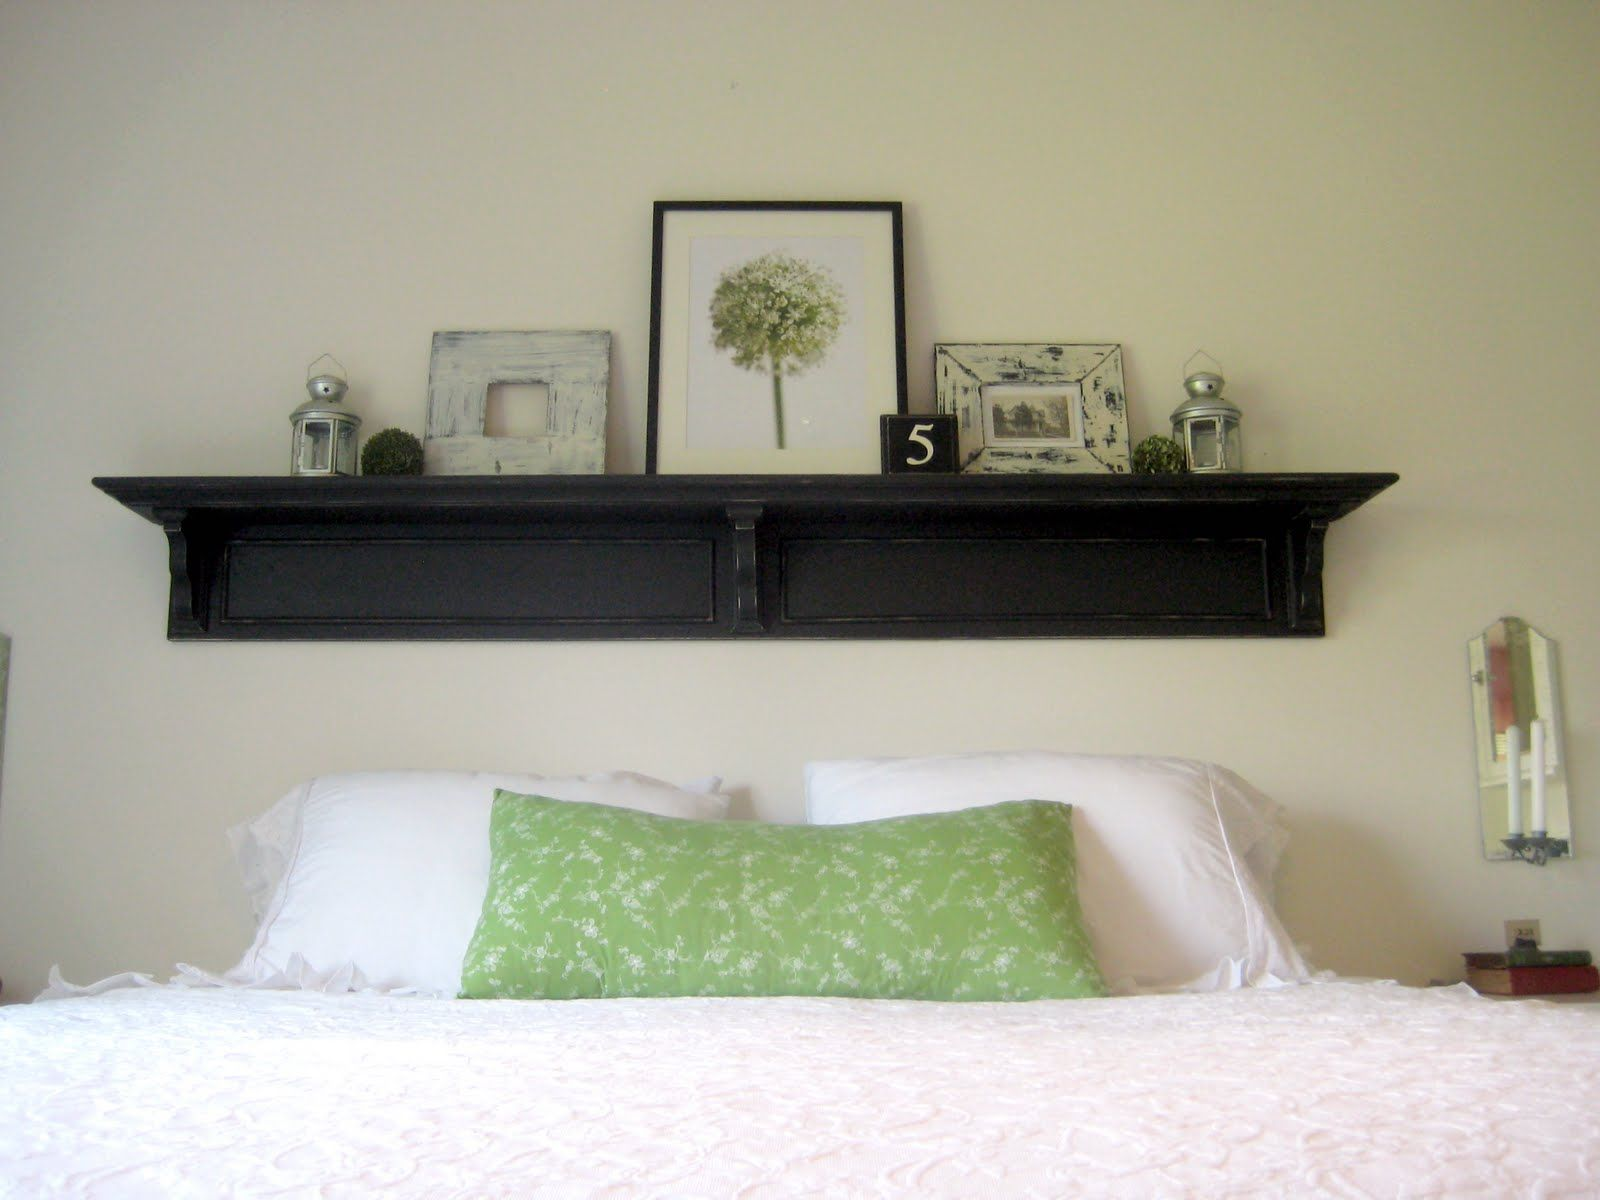 Superior Shelf Headboard Ideas Part - 6: I Am So Excited To Show You My Latest Project. A Headboard Shelf. When We  Purchased A King Size Bed Three Years Ago I Just Couldnu0027t Brin.